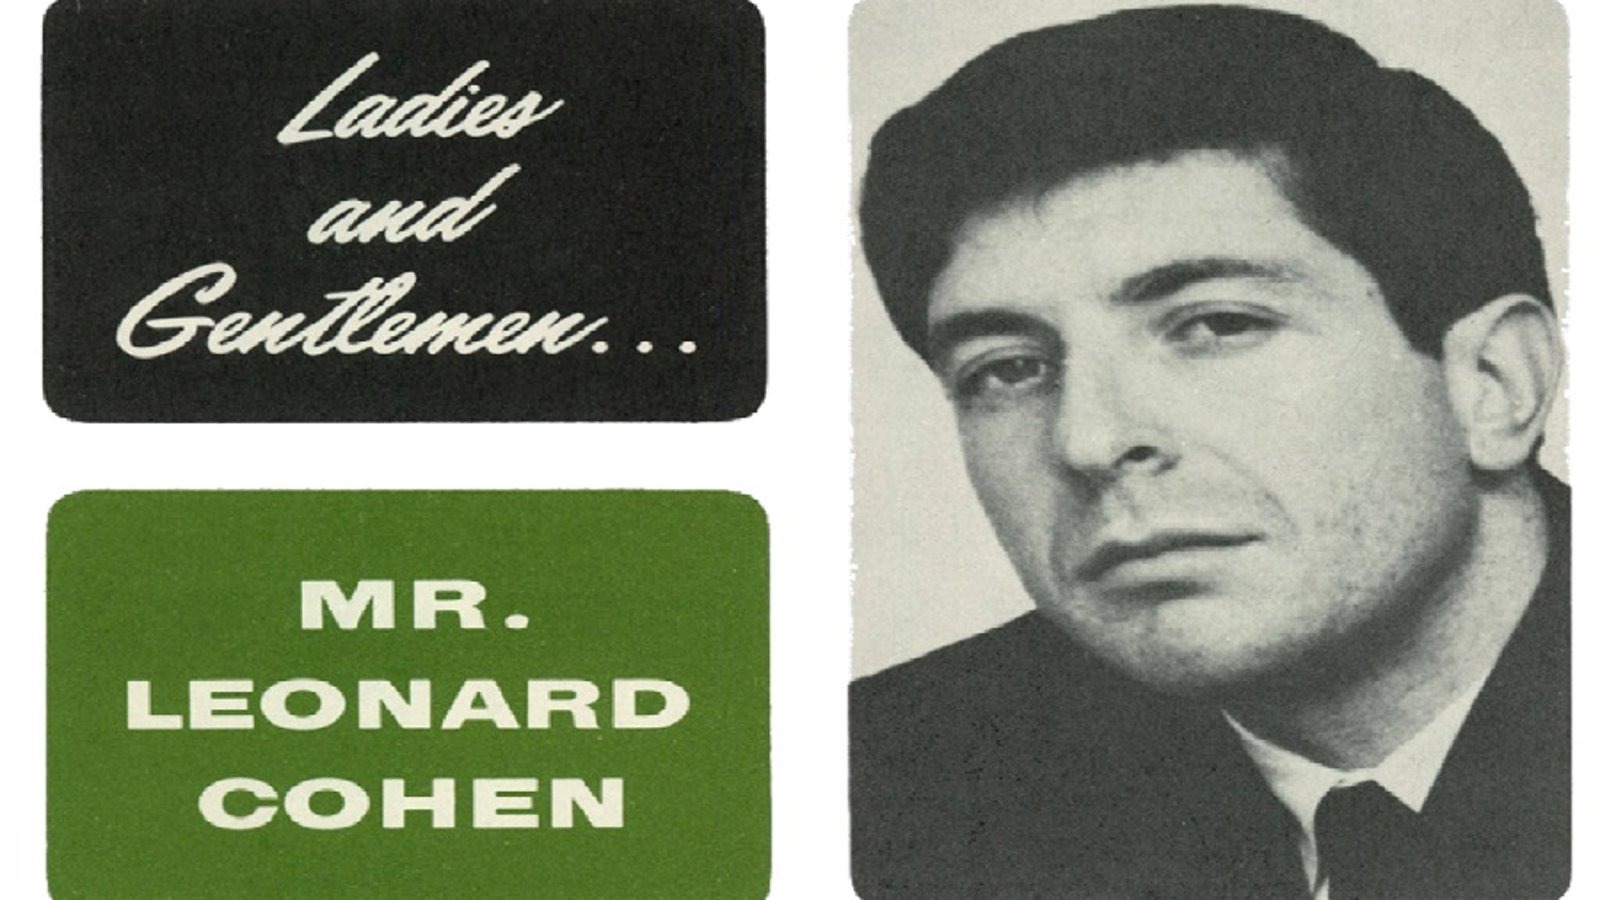 Ladies and Gentlemen… Mr. Leonard Cohen - An Intimate Look into a Poet's Life